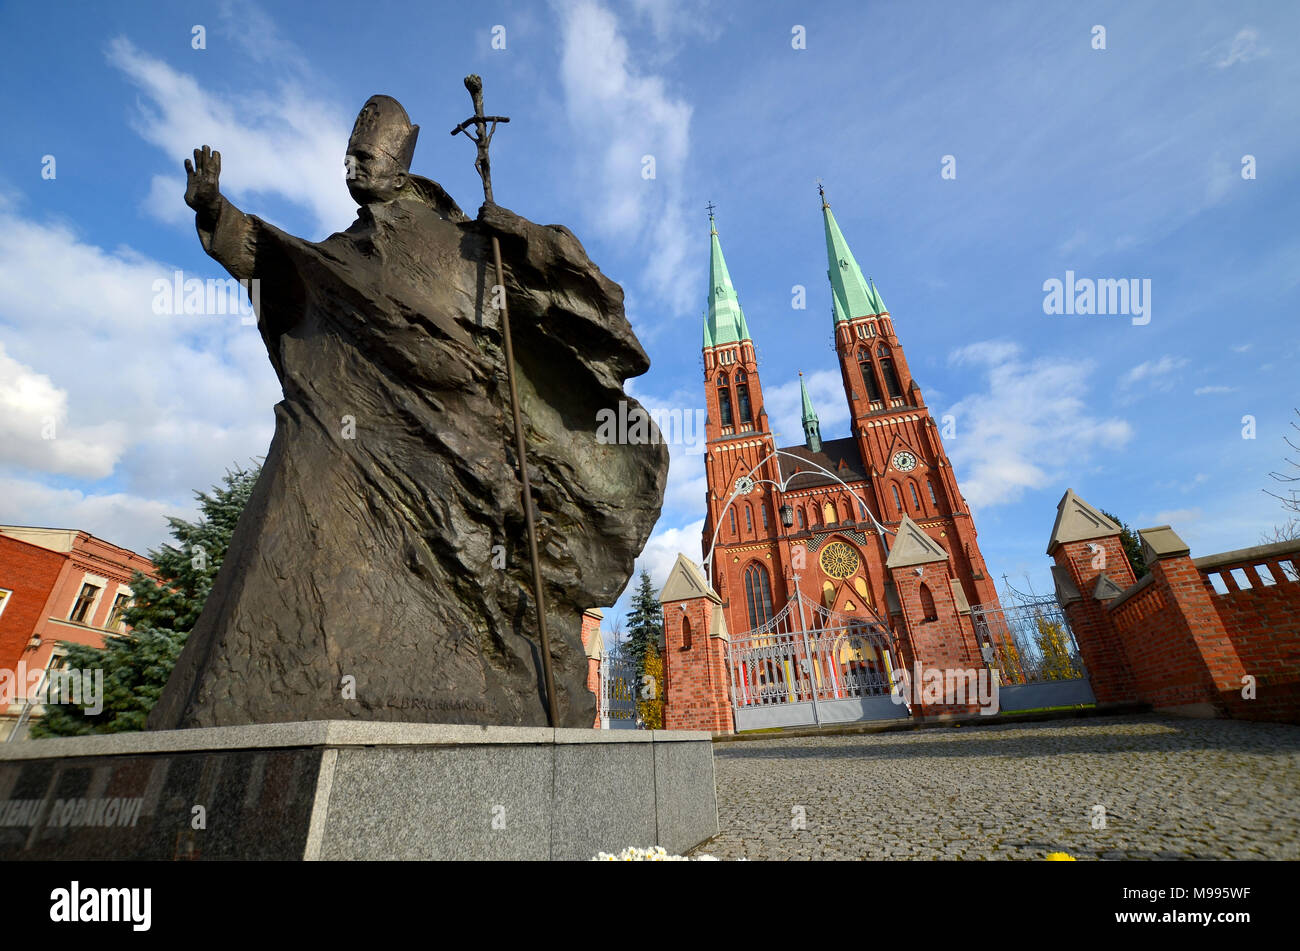 Statue of John Paul II against the background of the cathedral (Rybnik, Poland) - Stock Image